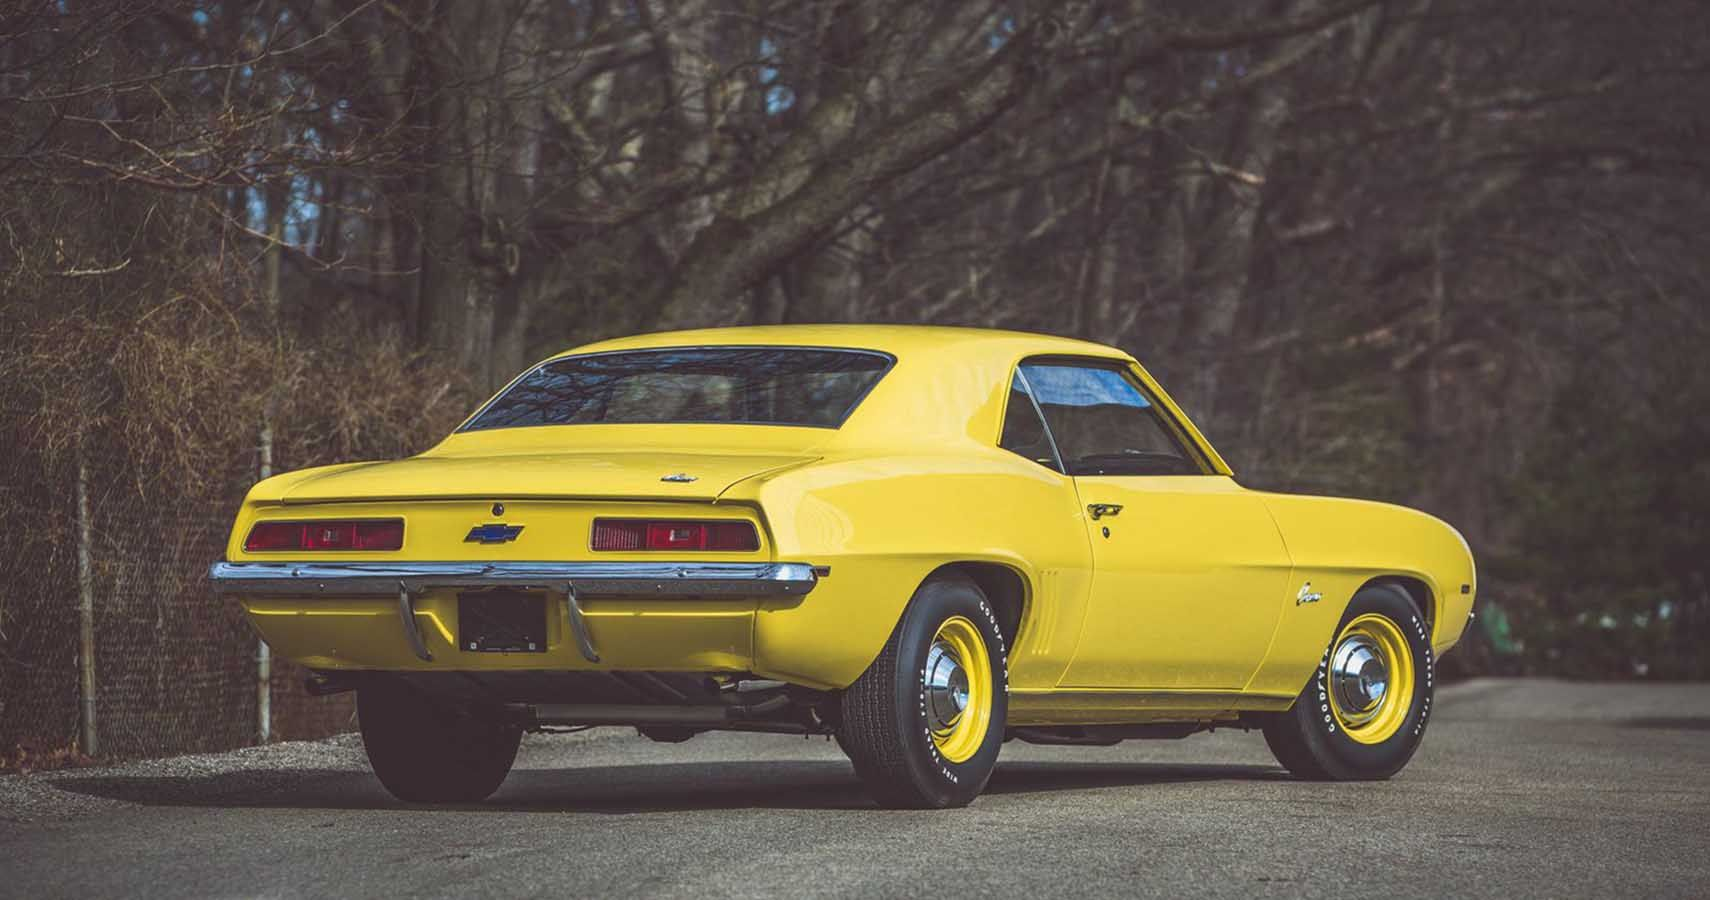 10 Classic Muscle Cars We'd Drive Over A New Challenger Hellcat Any Day